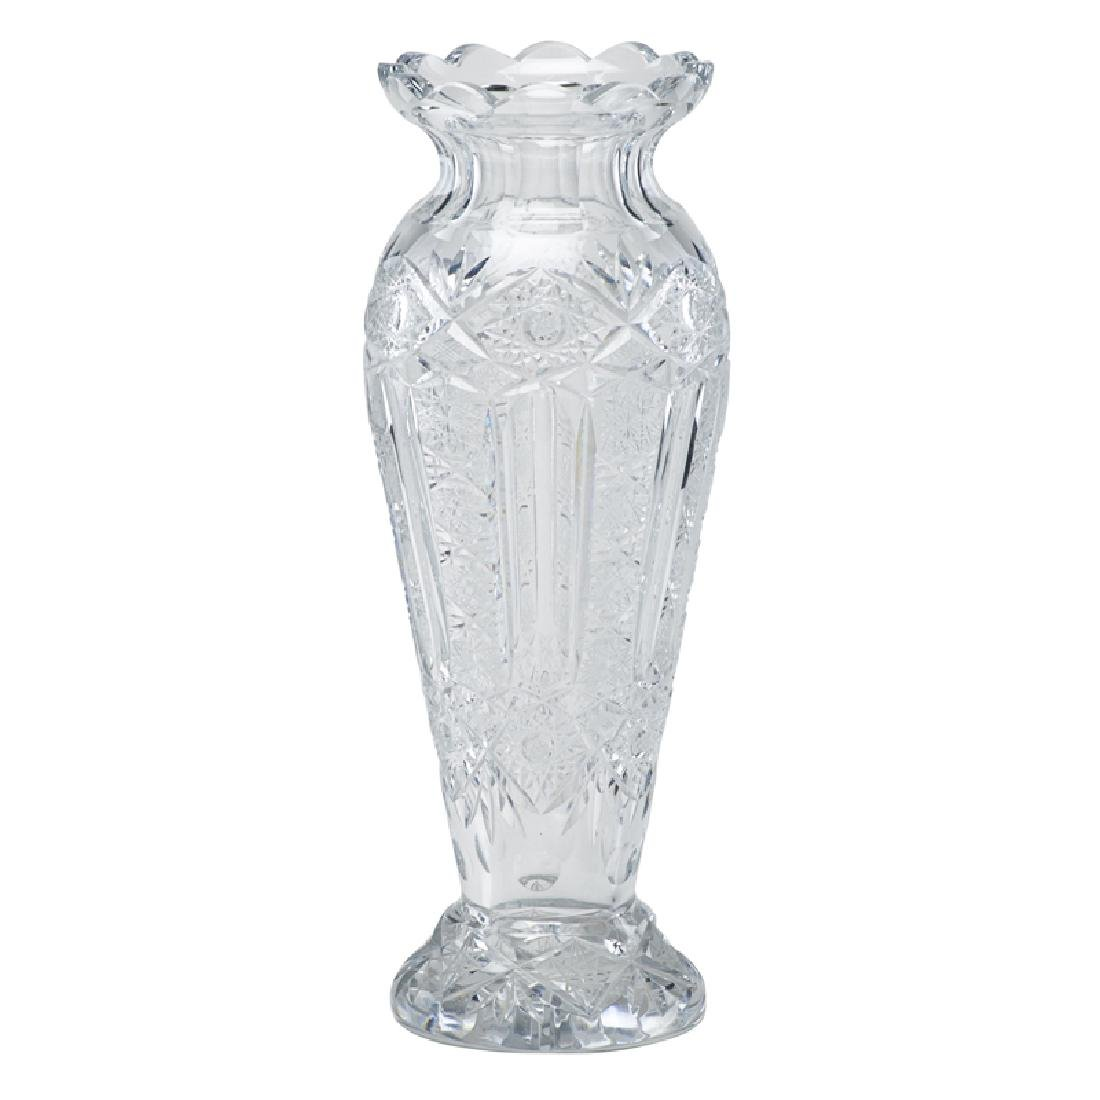 MONUMENTAL CUT GLASS VASE